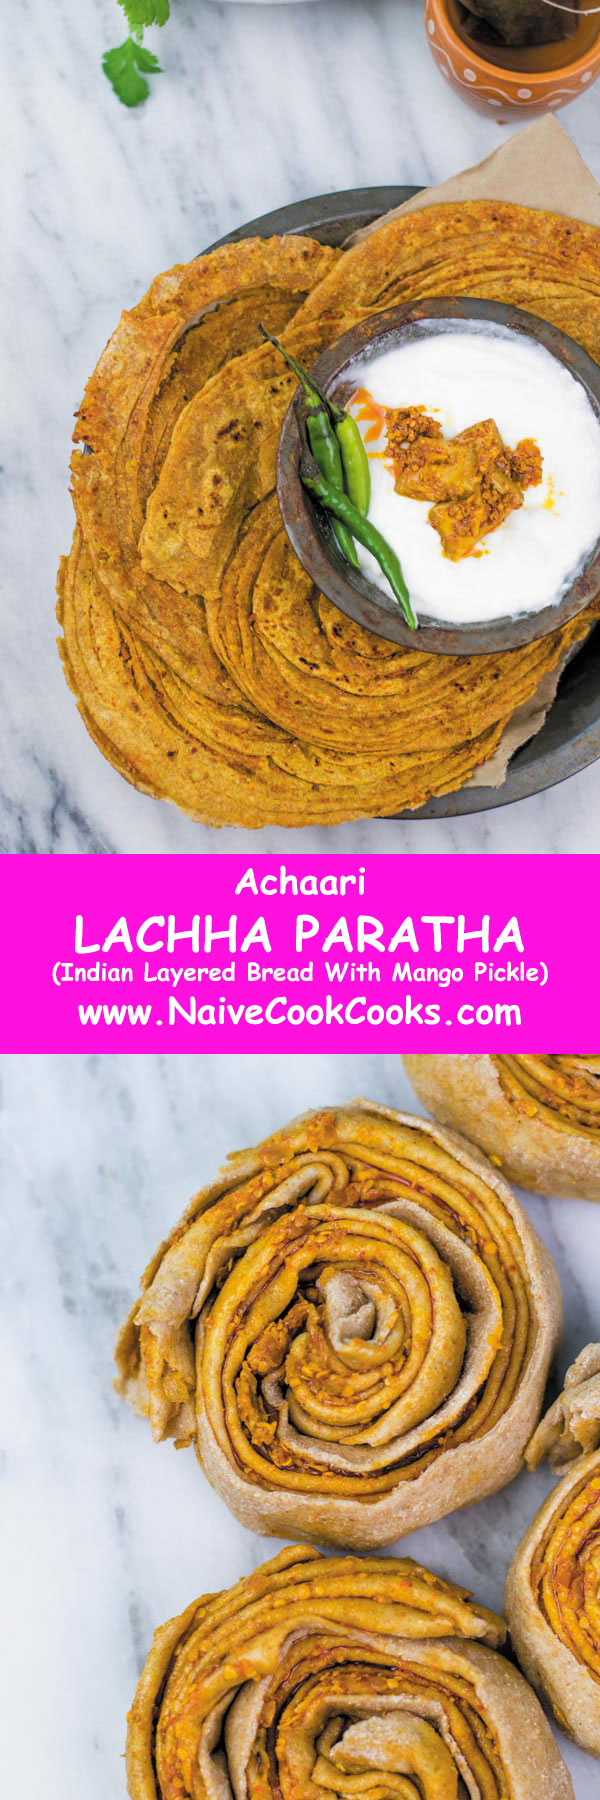 achaari lachha paratha for pinterest